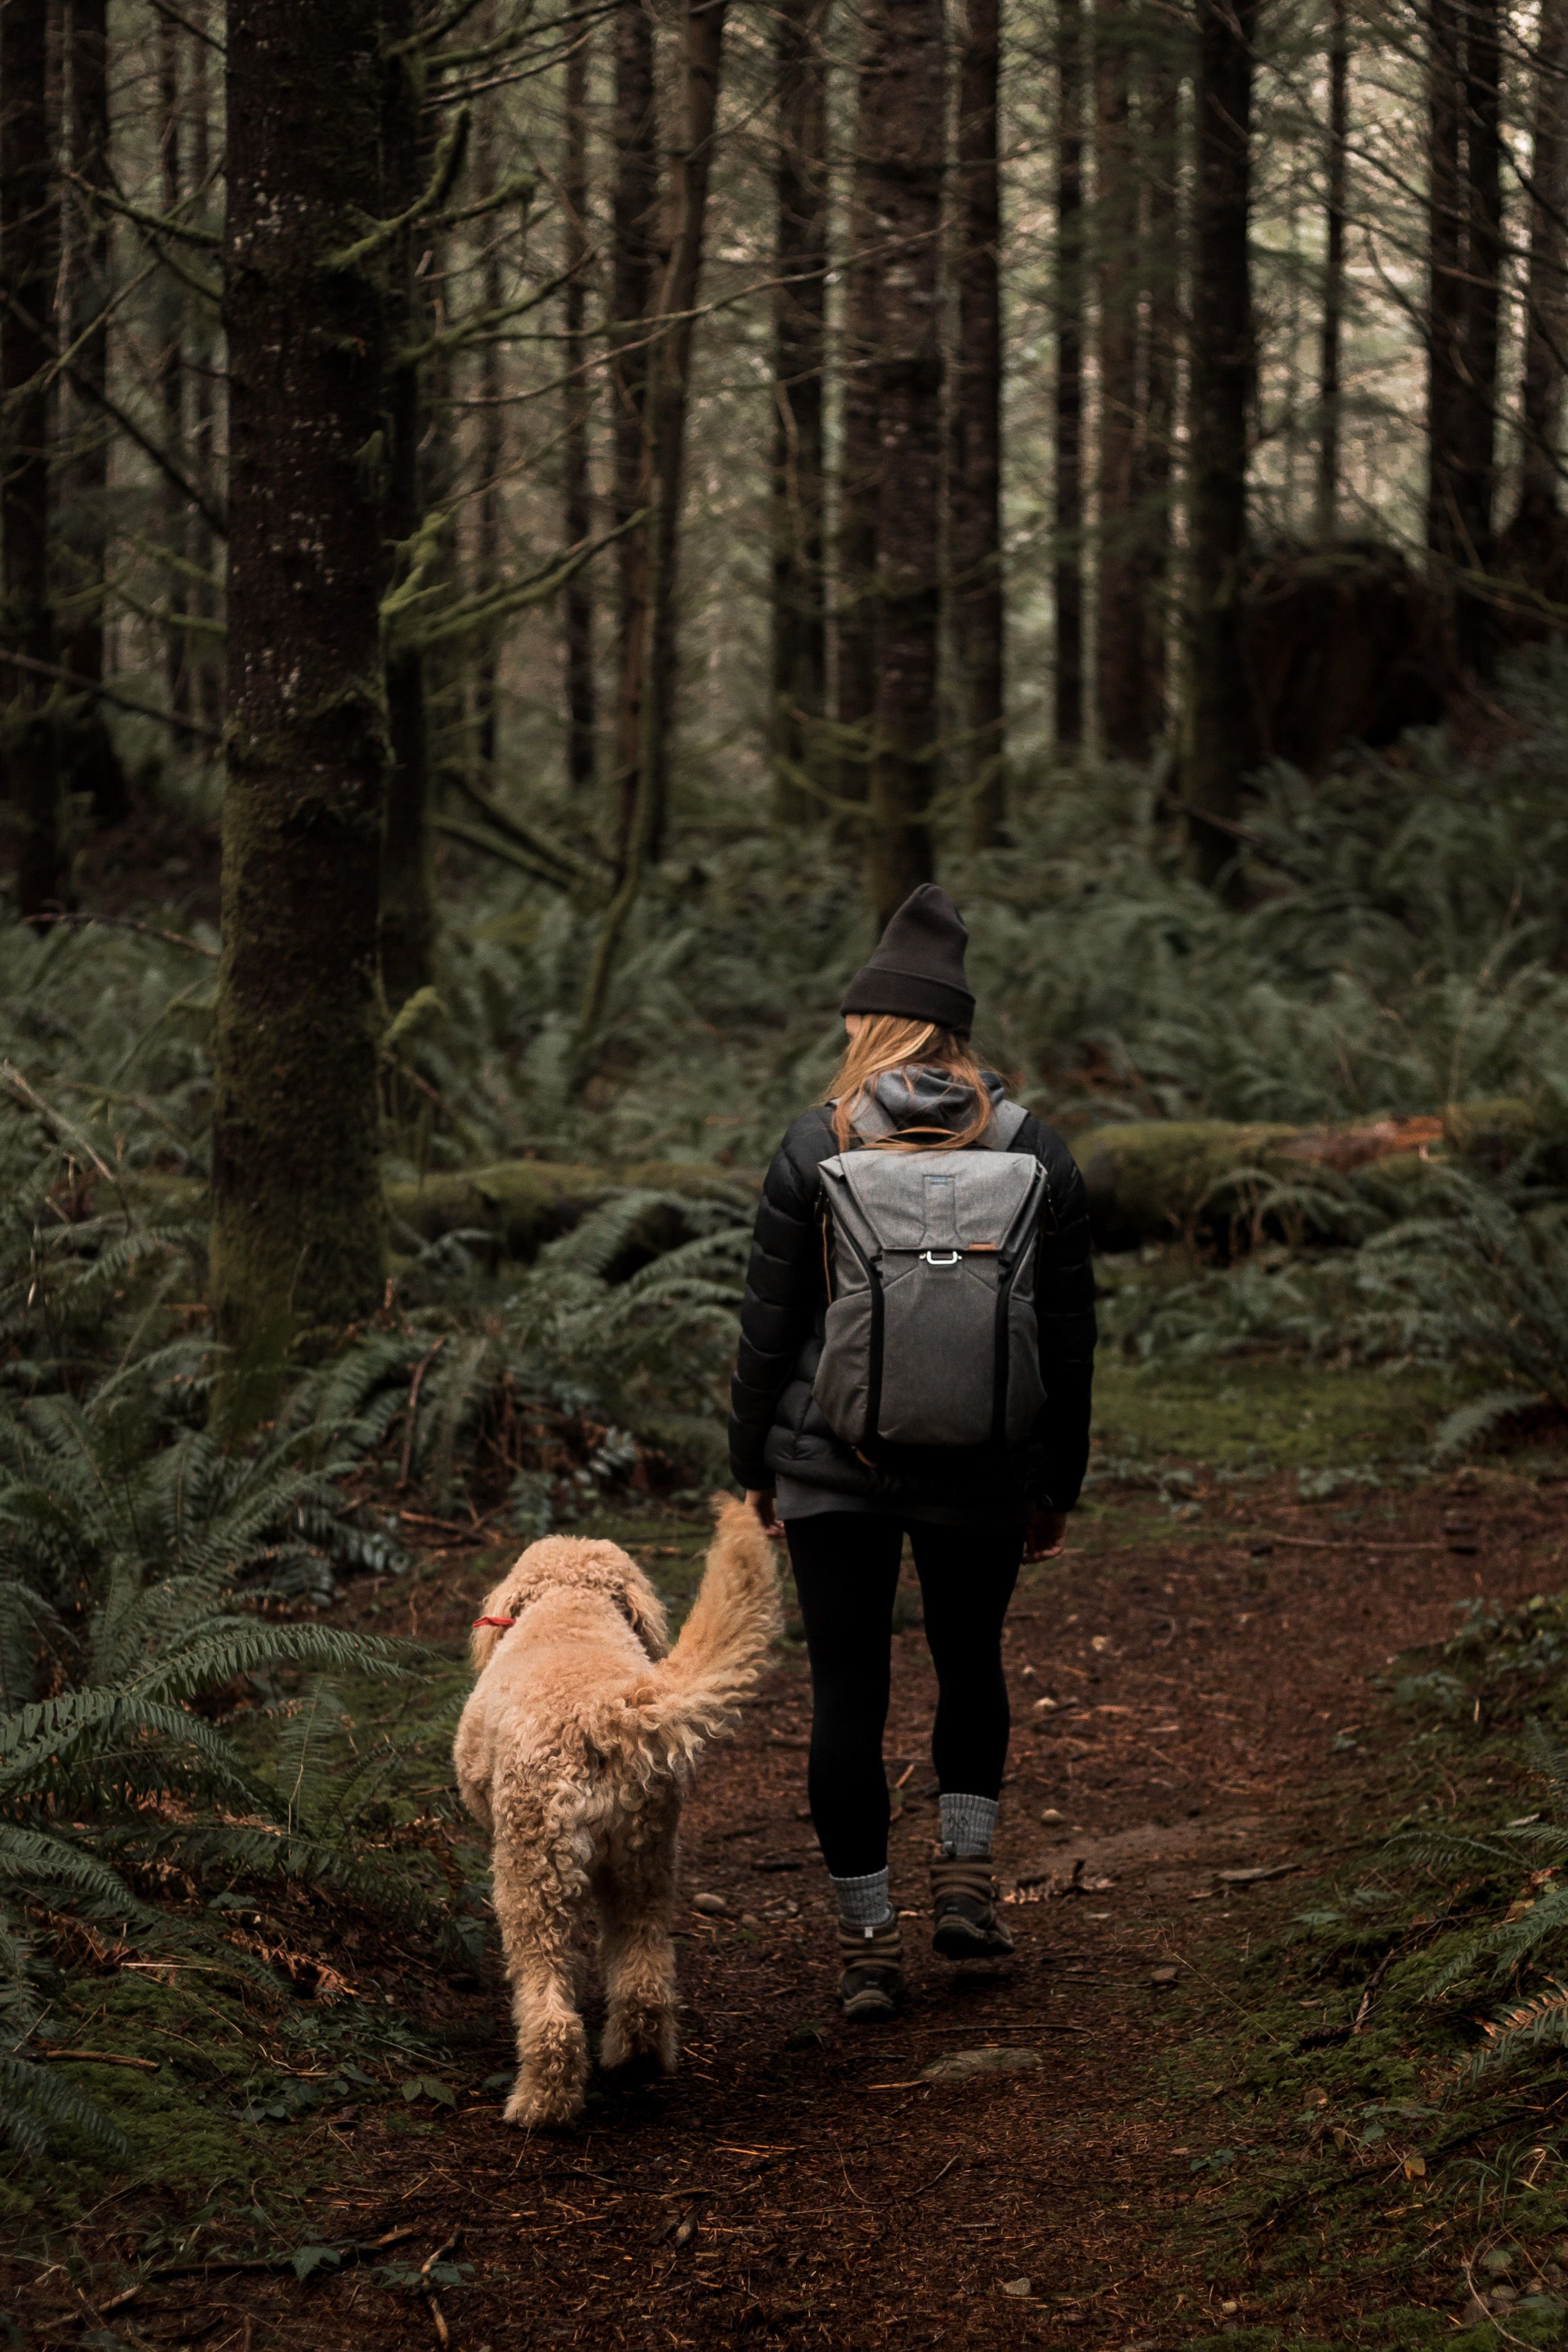 A pacific northwest adventure. A girl and her goldendoodle. #adventure #goldendoodle #washington #pacificnorthwest #outdoors